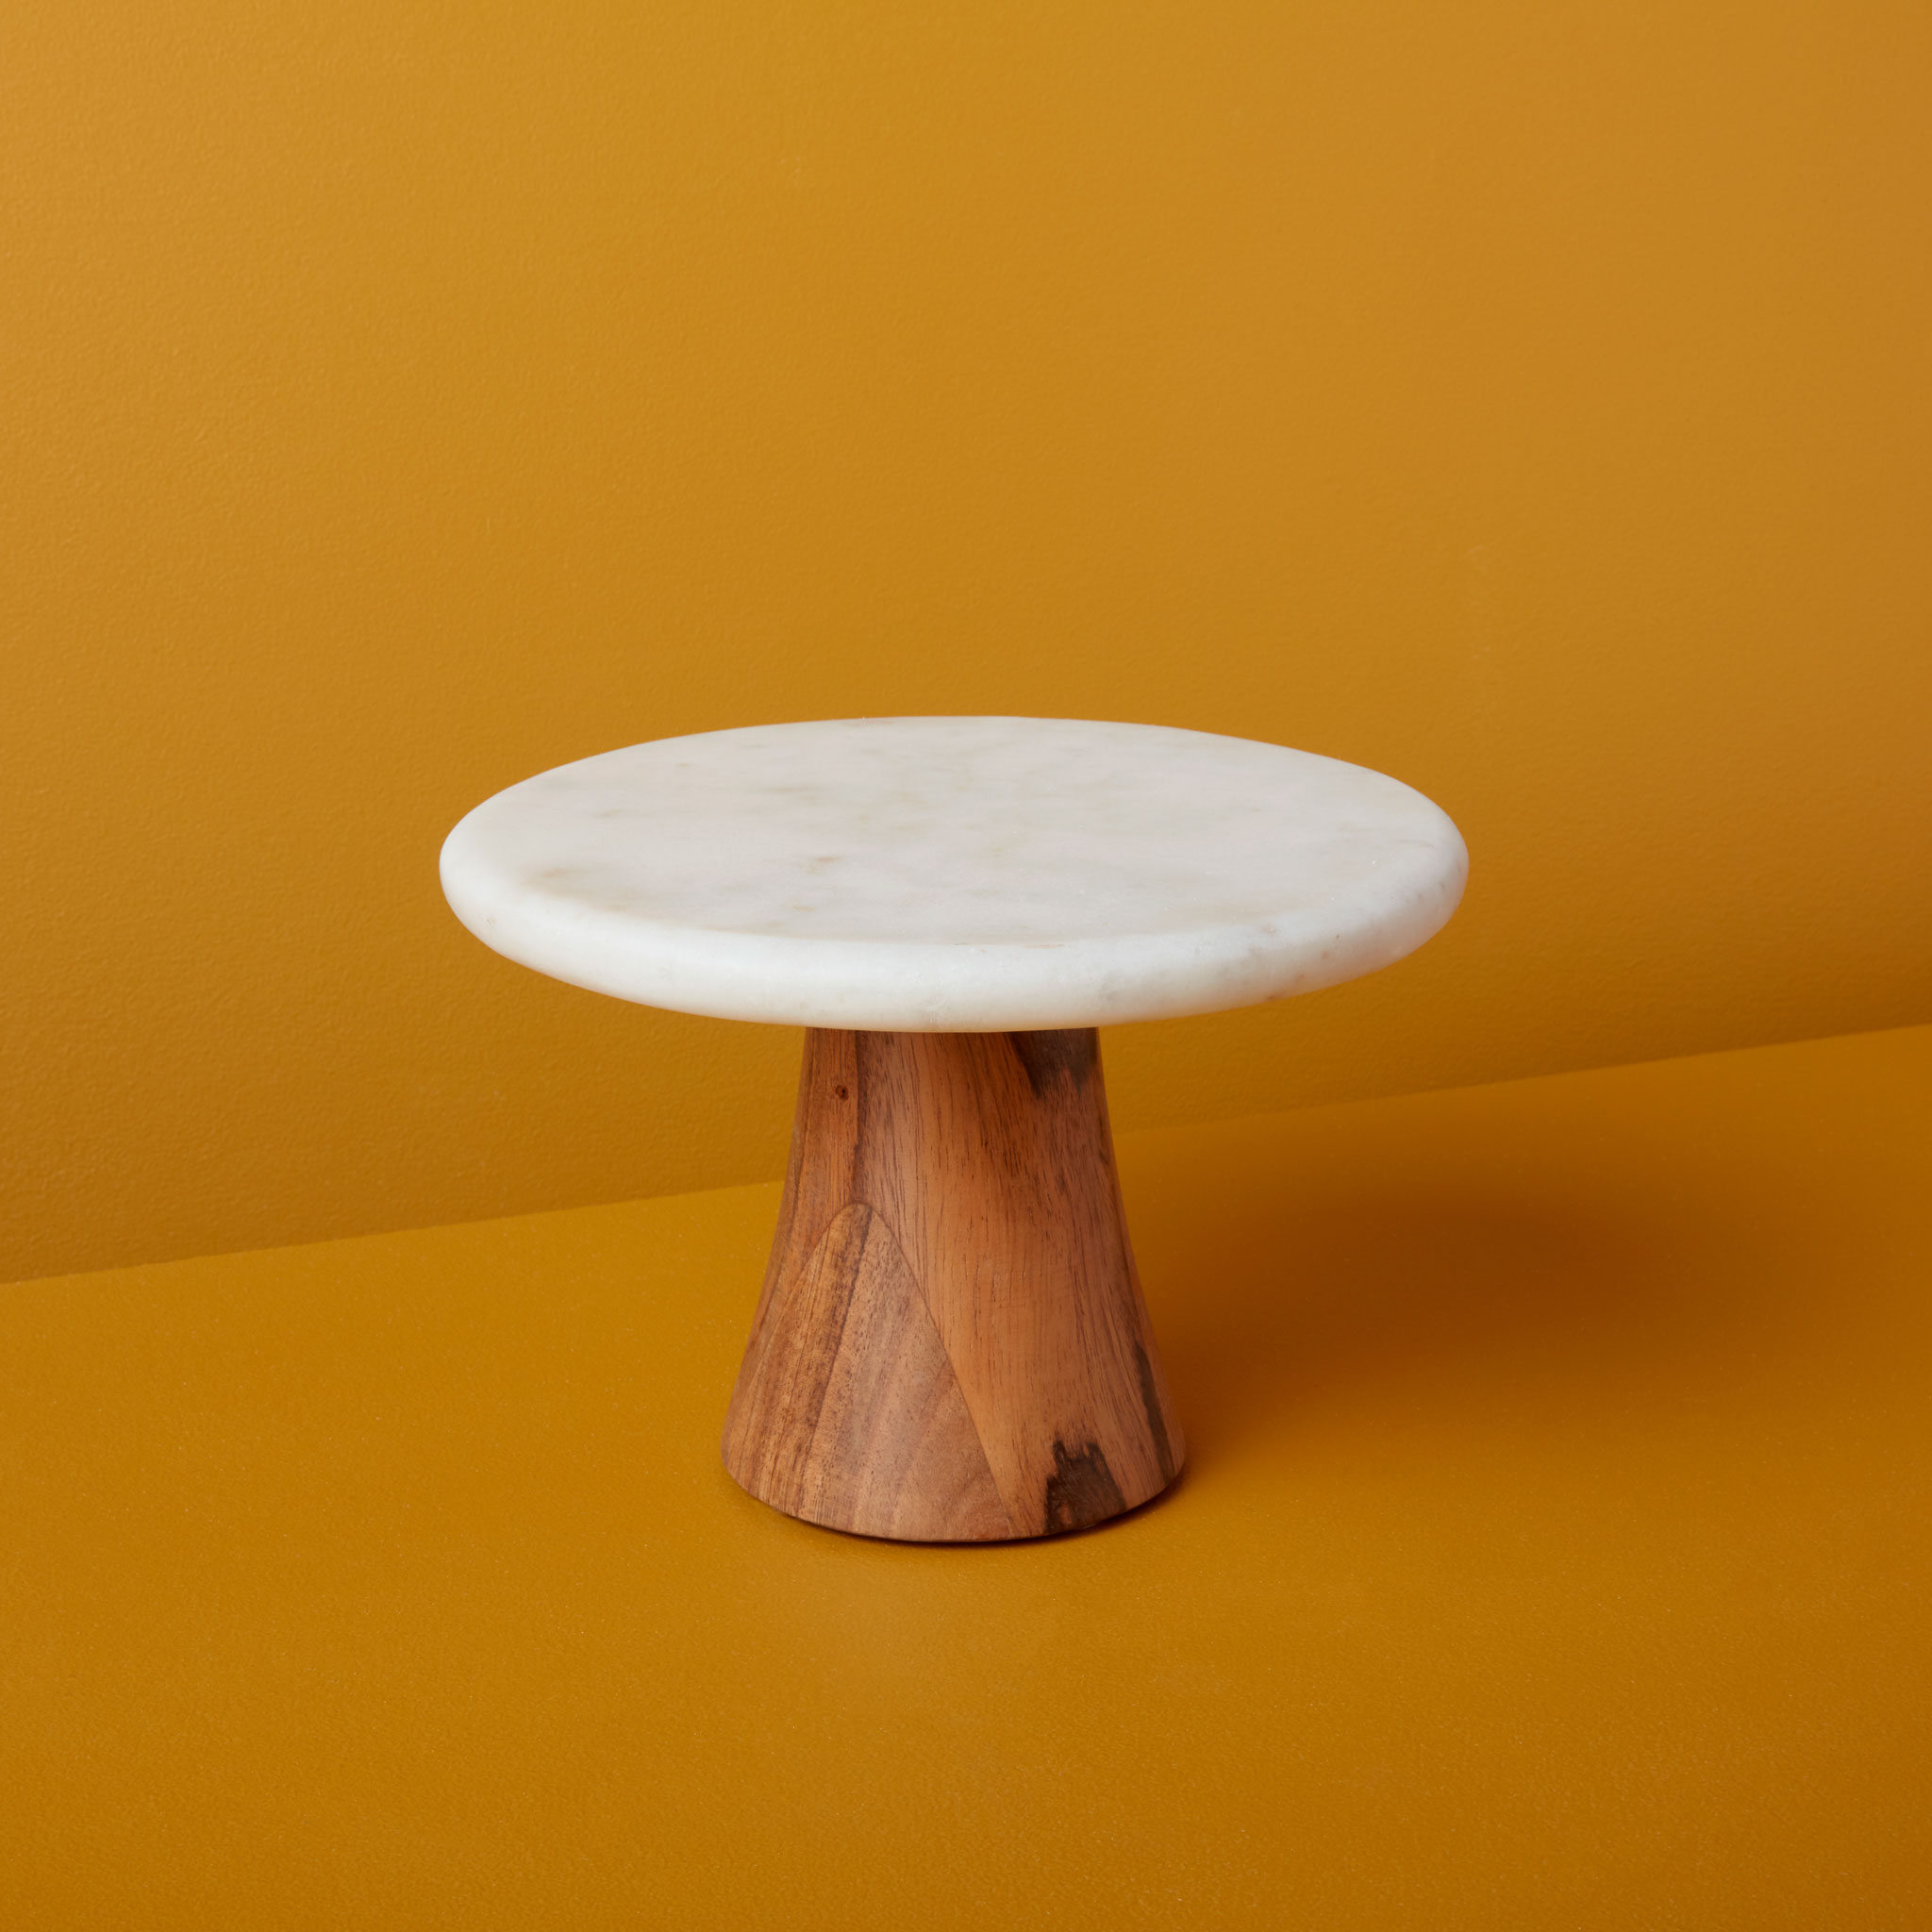 Be-Home_White-Marble-and-Wood-Cake-Stand-Small_58-32